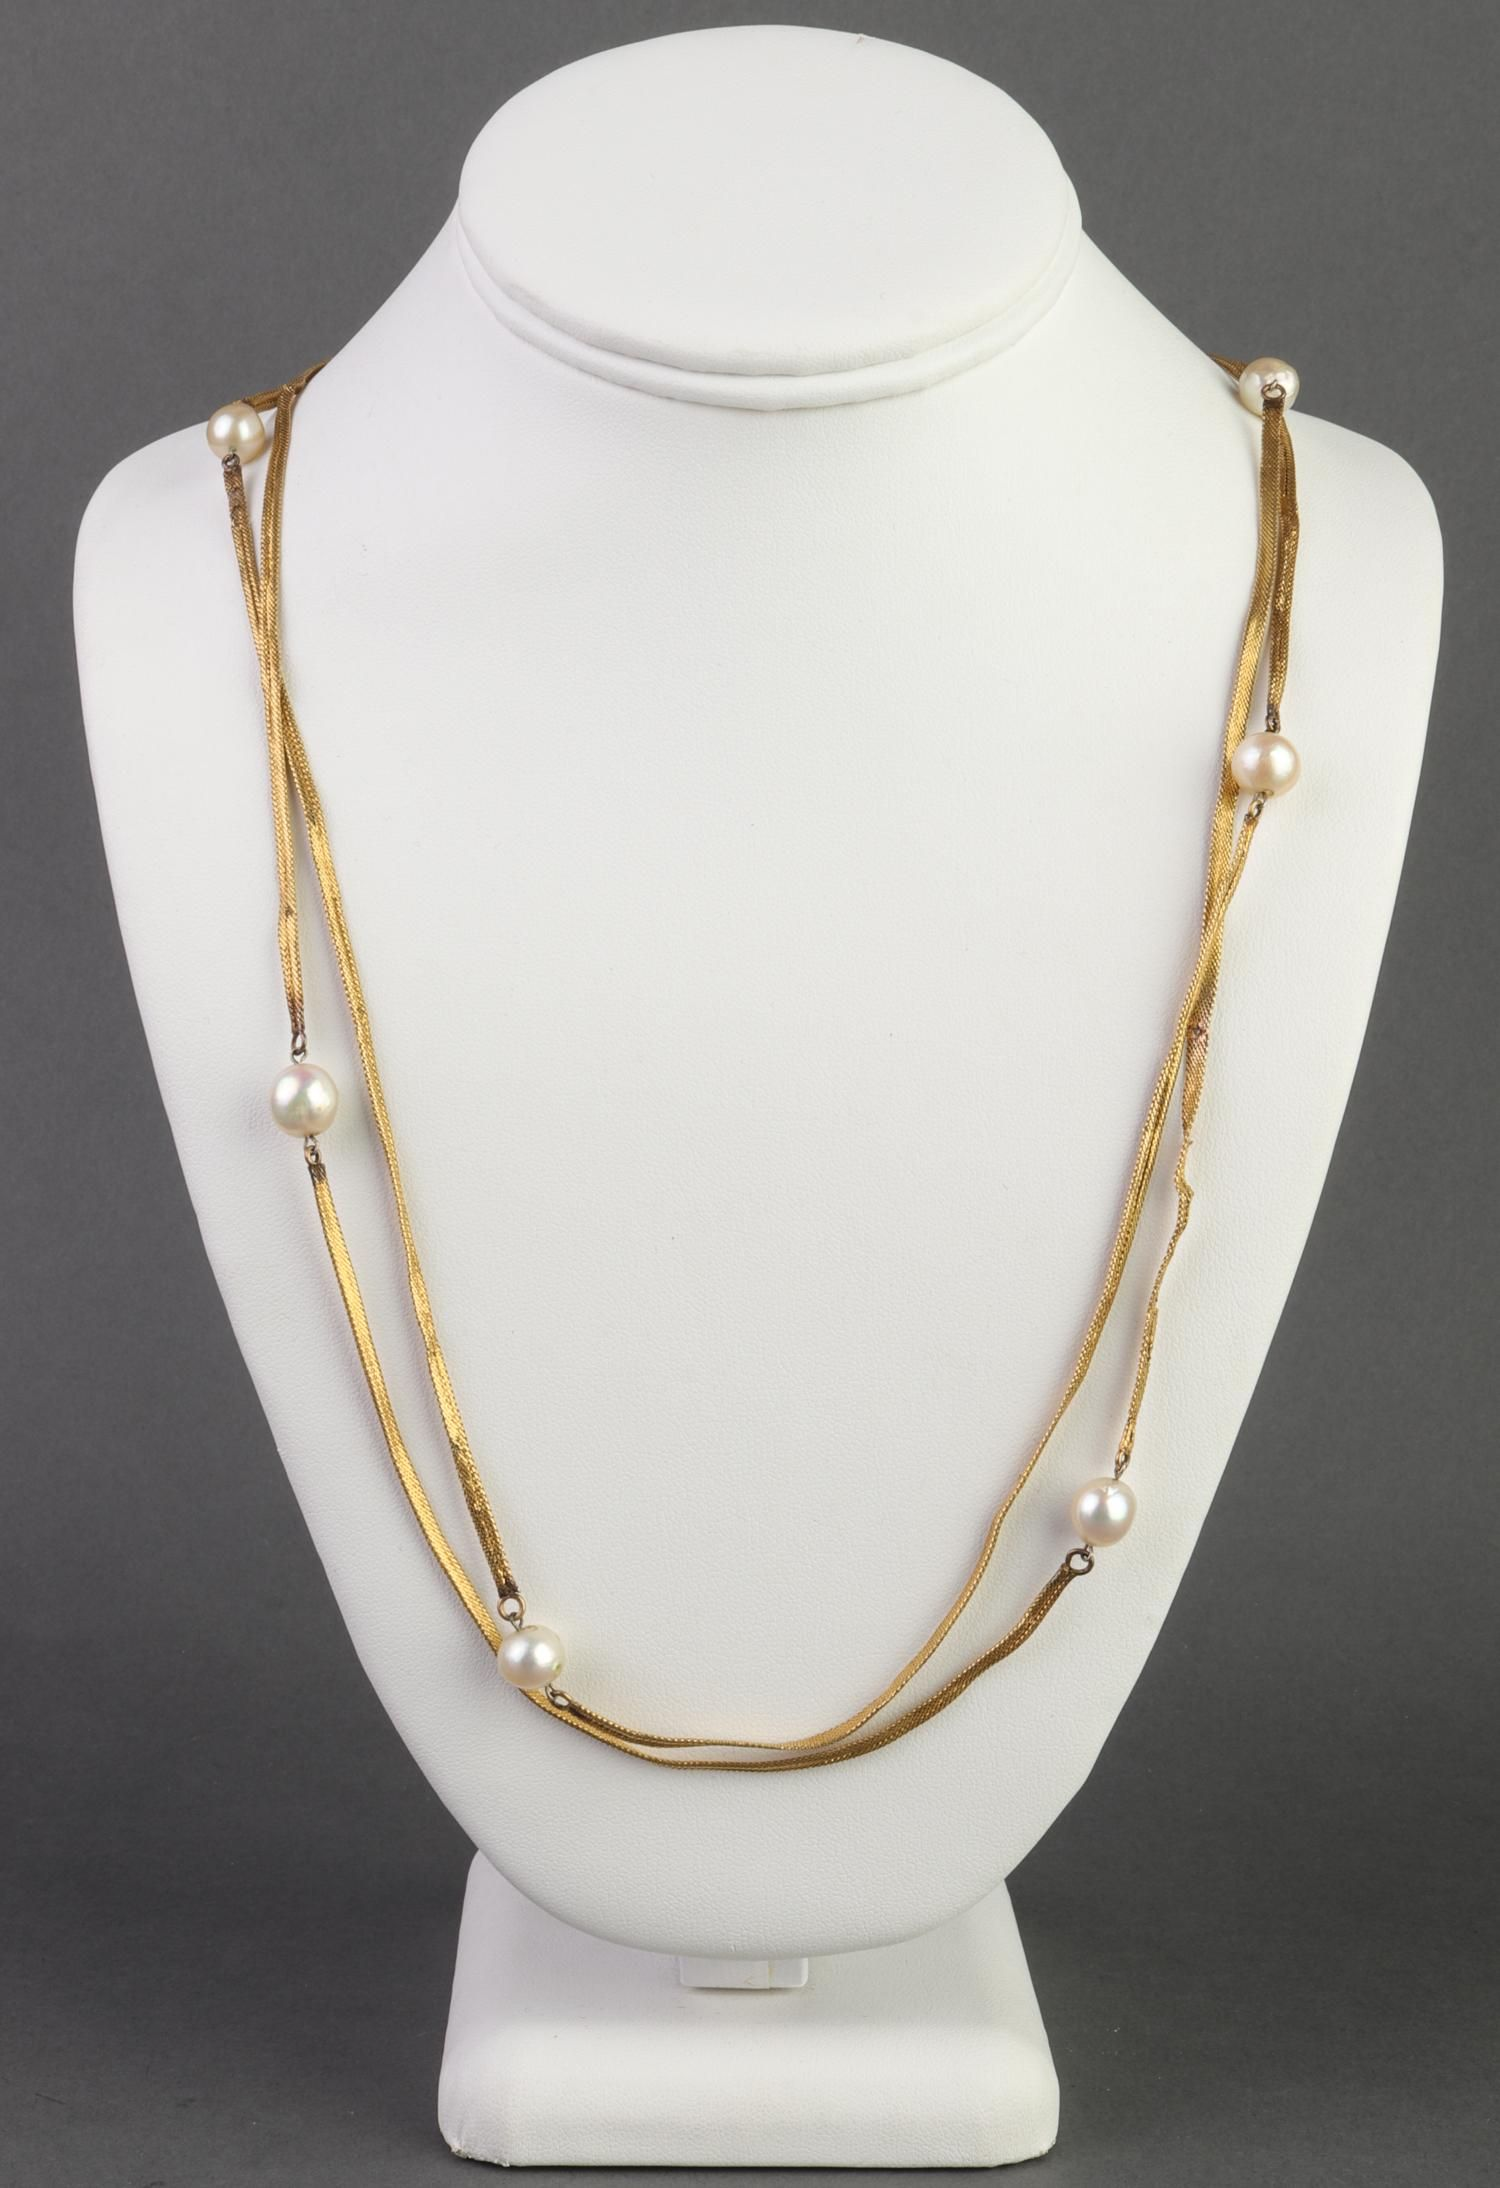 Vintage 14K Yellow Gold Oval Pearl Fob Necklace